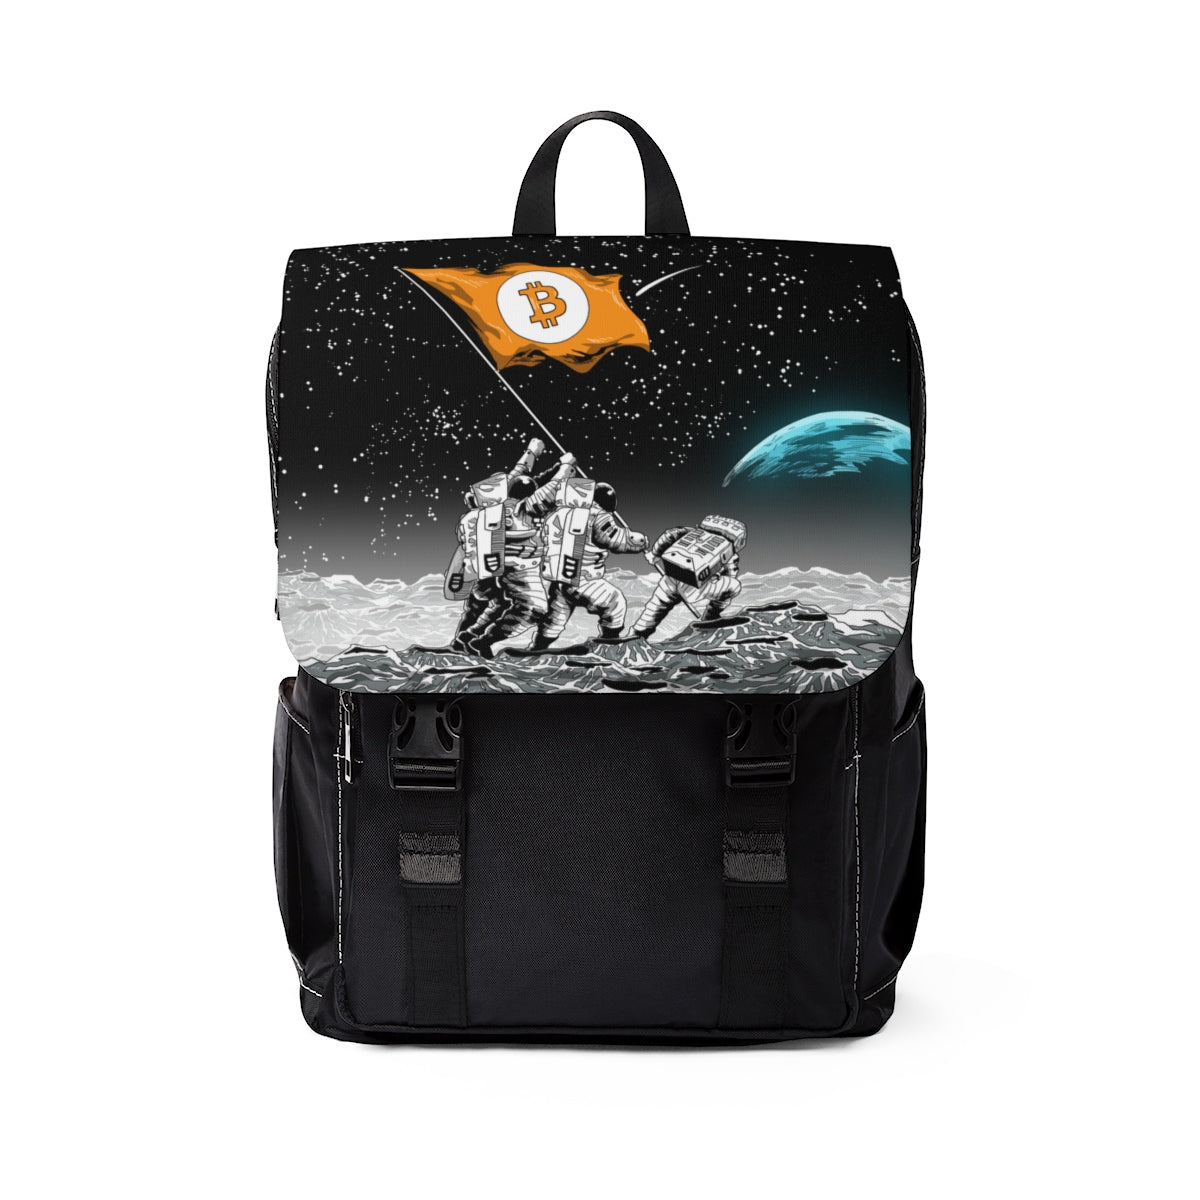 Bitcoin to the Moon Unisex Casual Shoulder Backpack